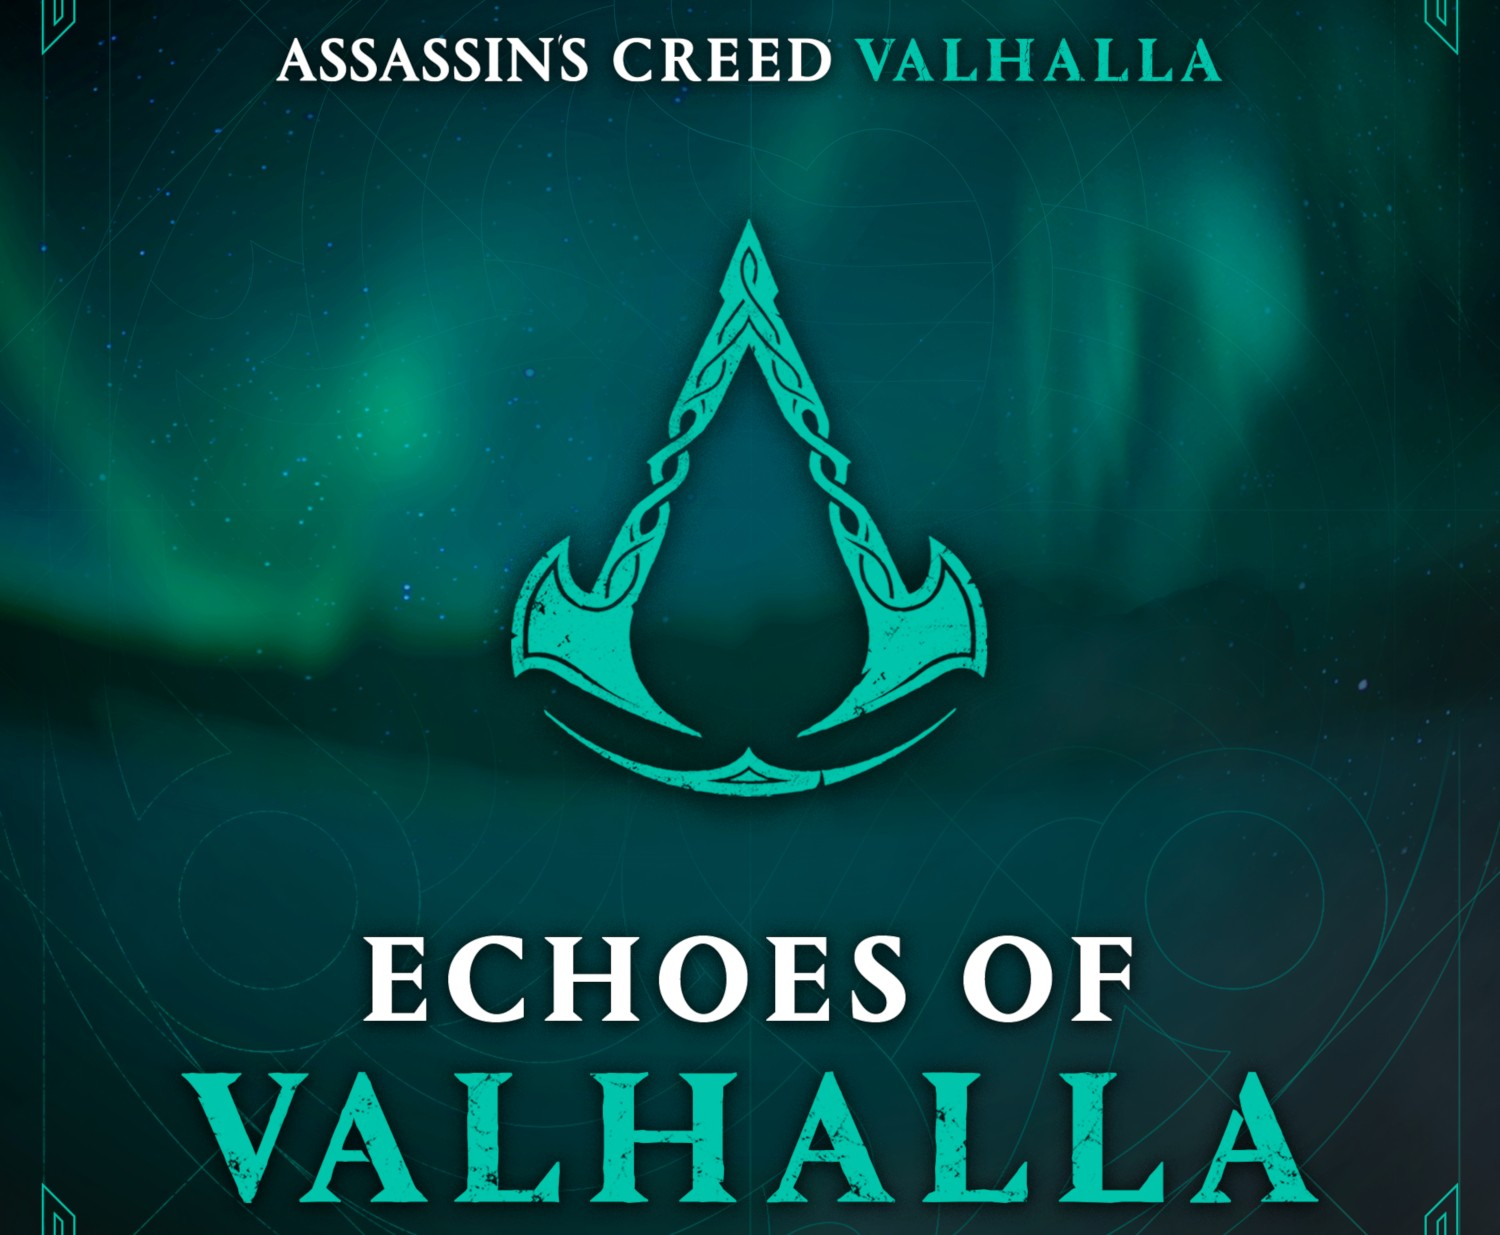 Assassin's Creed Valhalla story trailer released